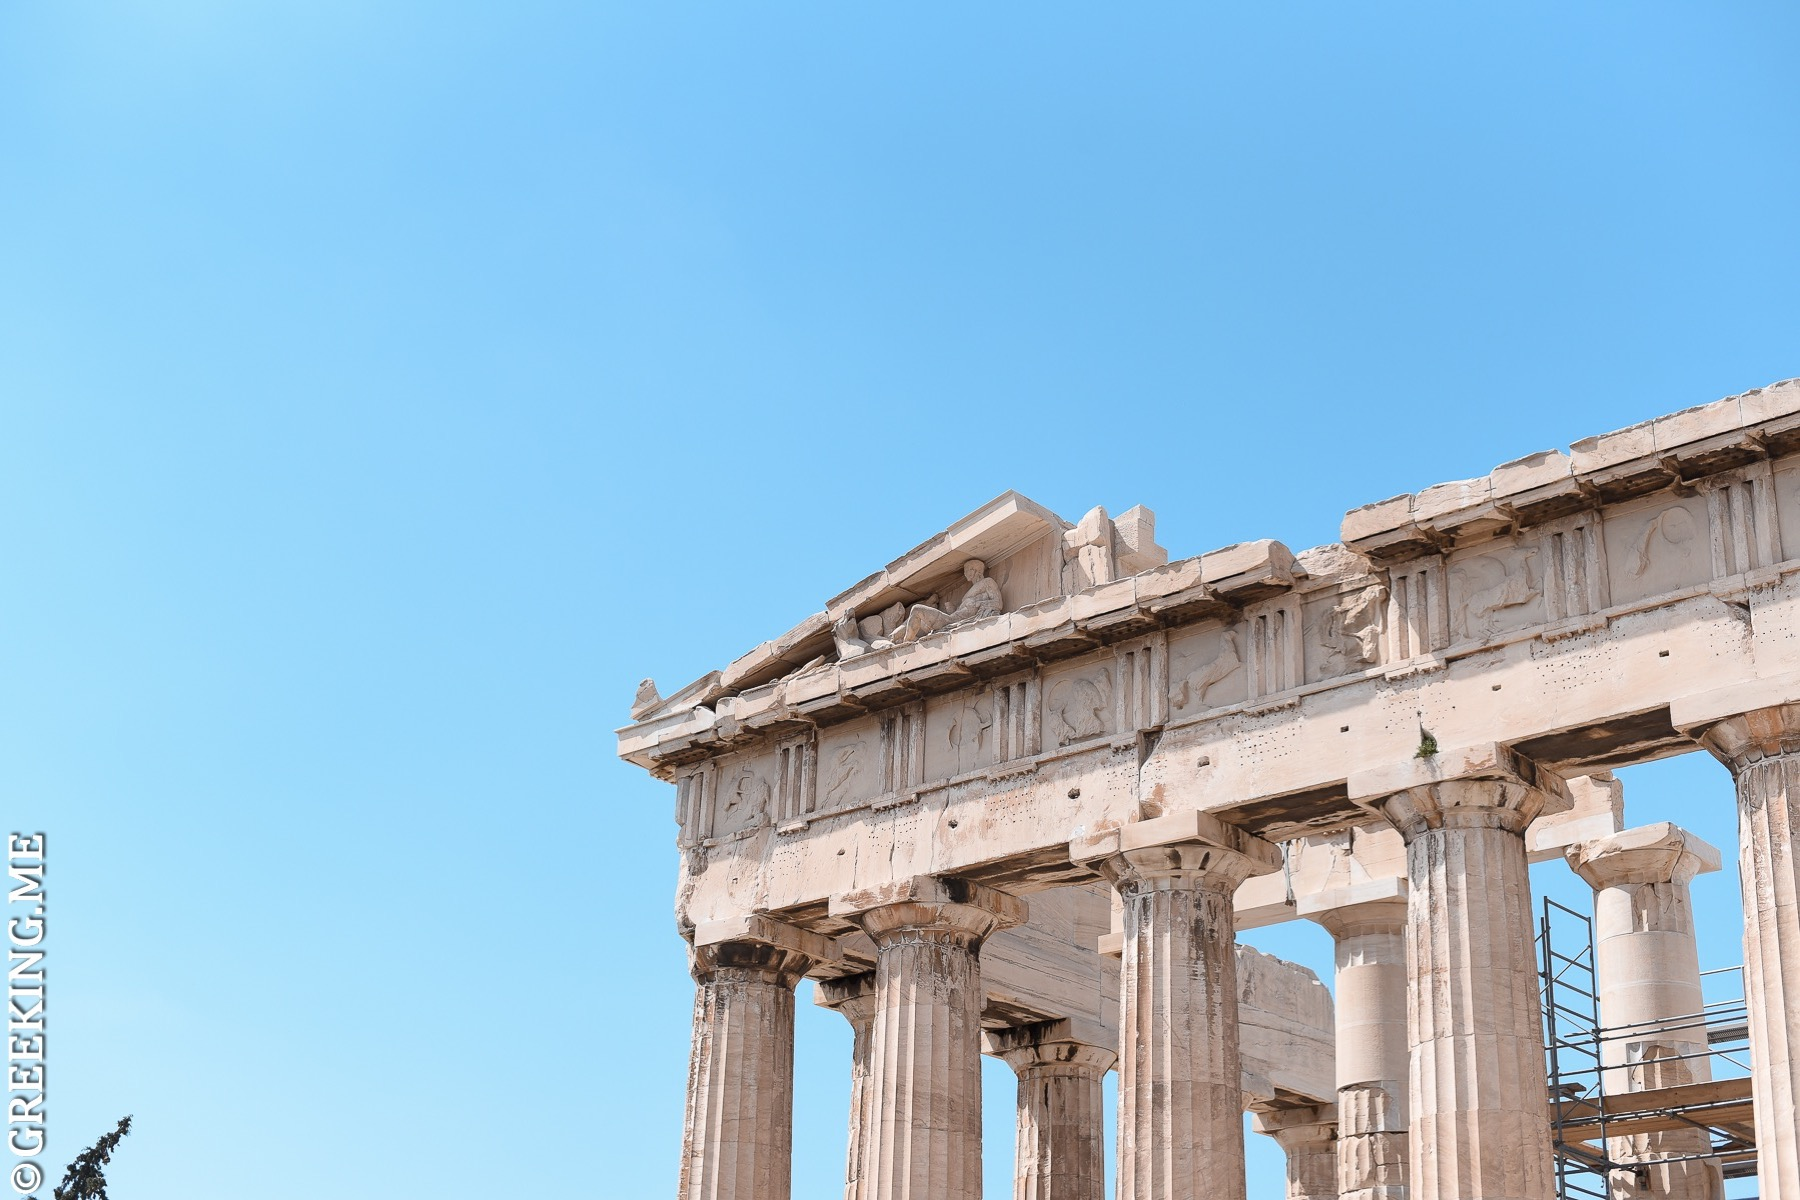 Skip the Lines: Mythology Tour of Acropolis, Acropolis